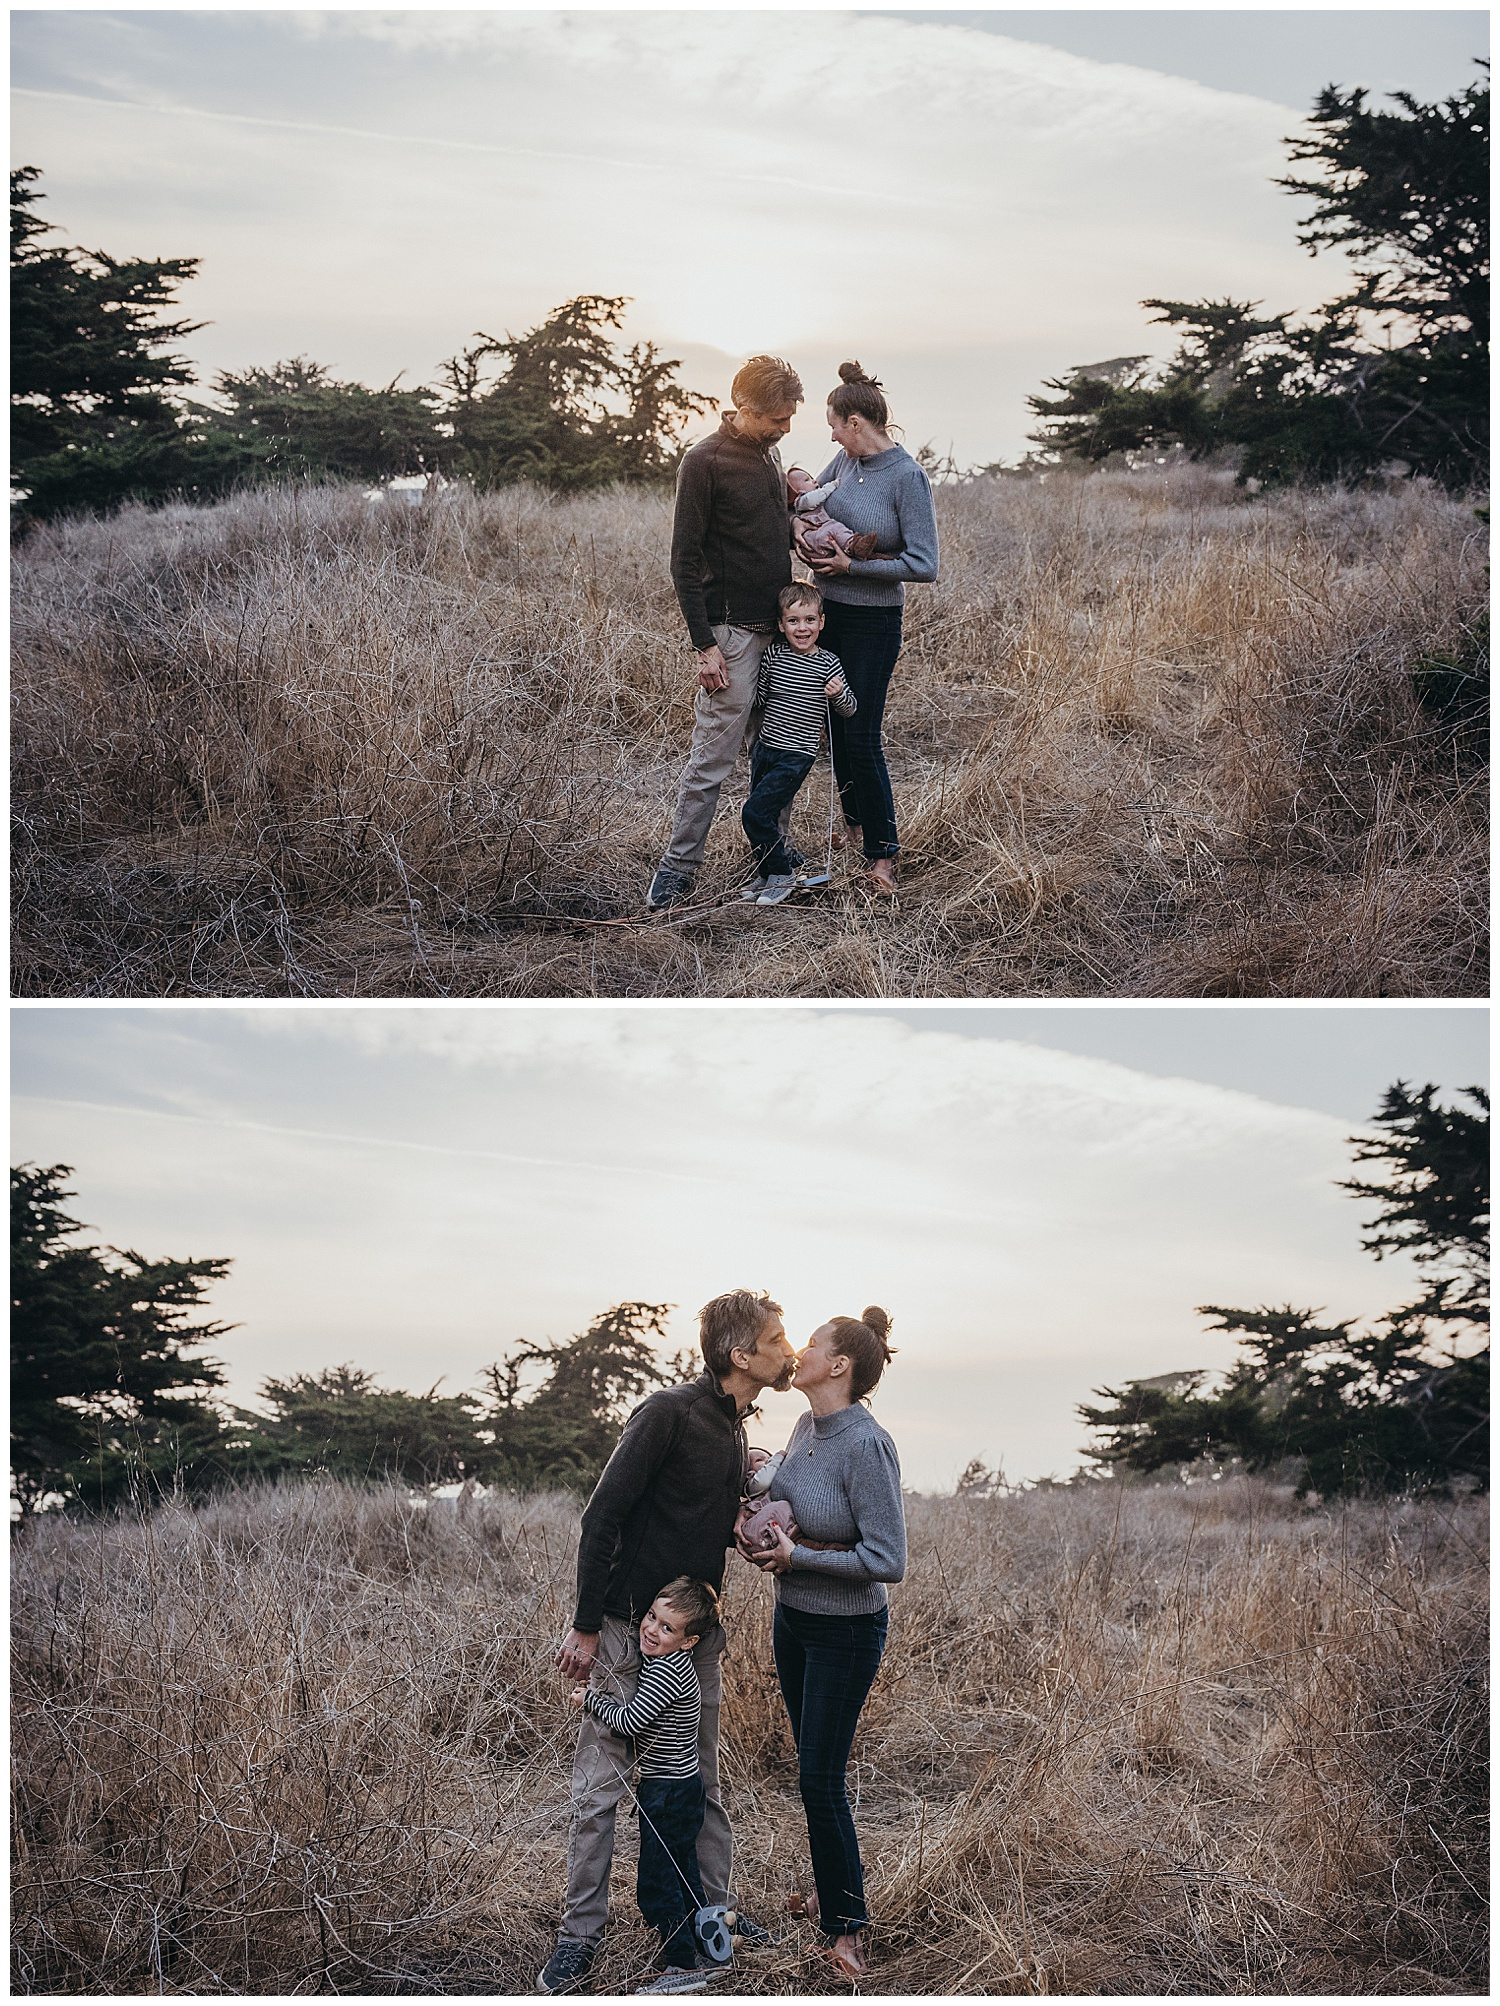 family session at sunset in field